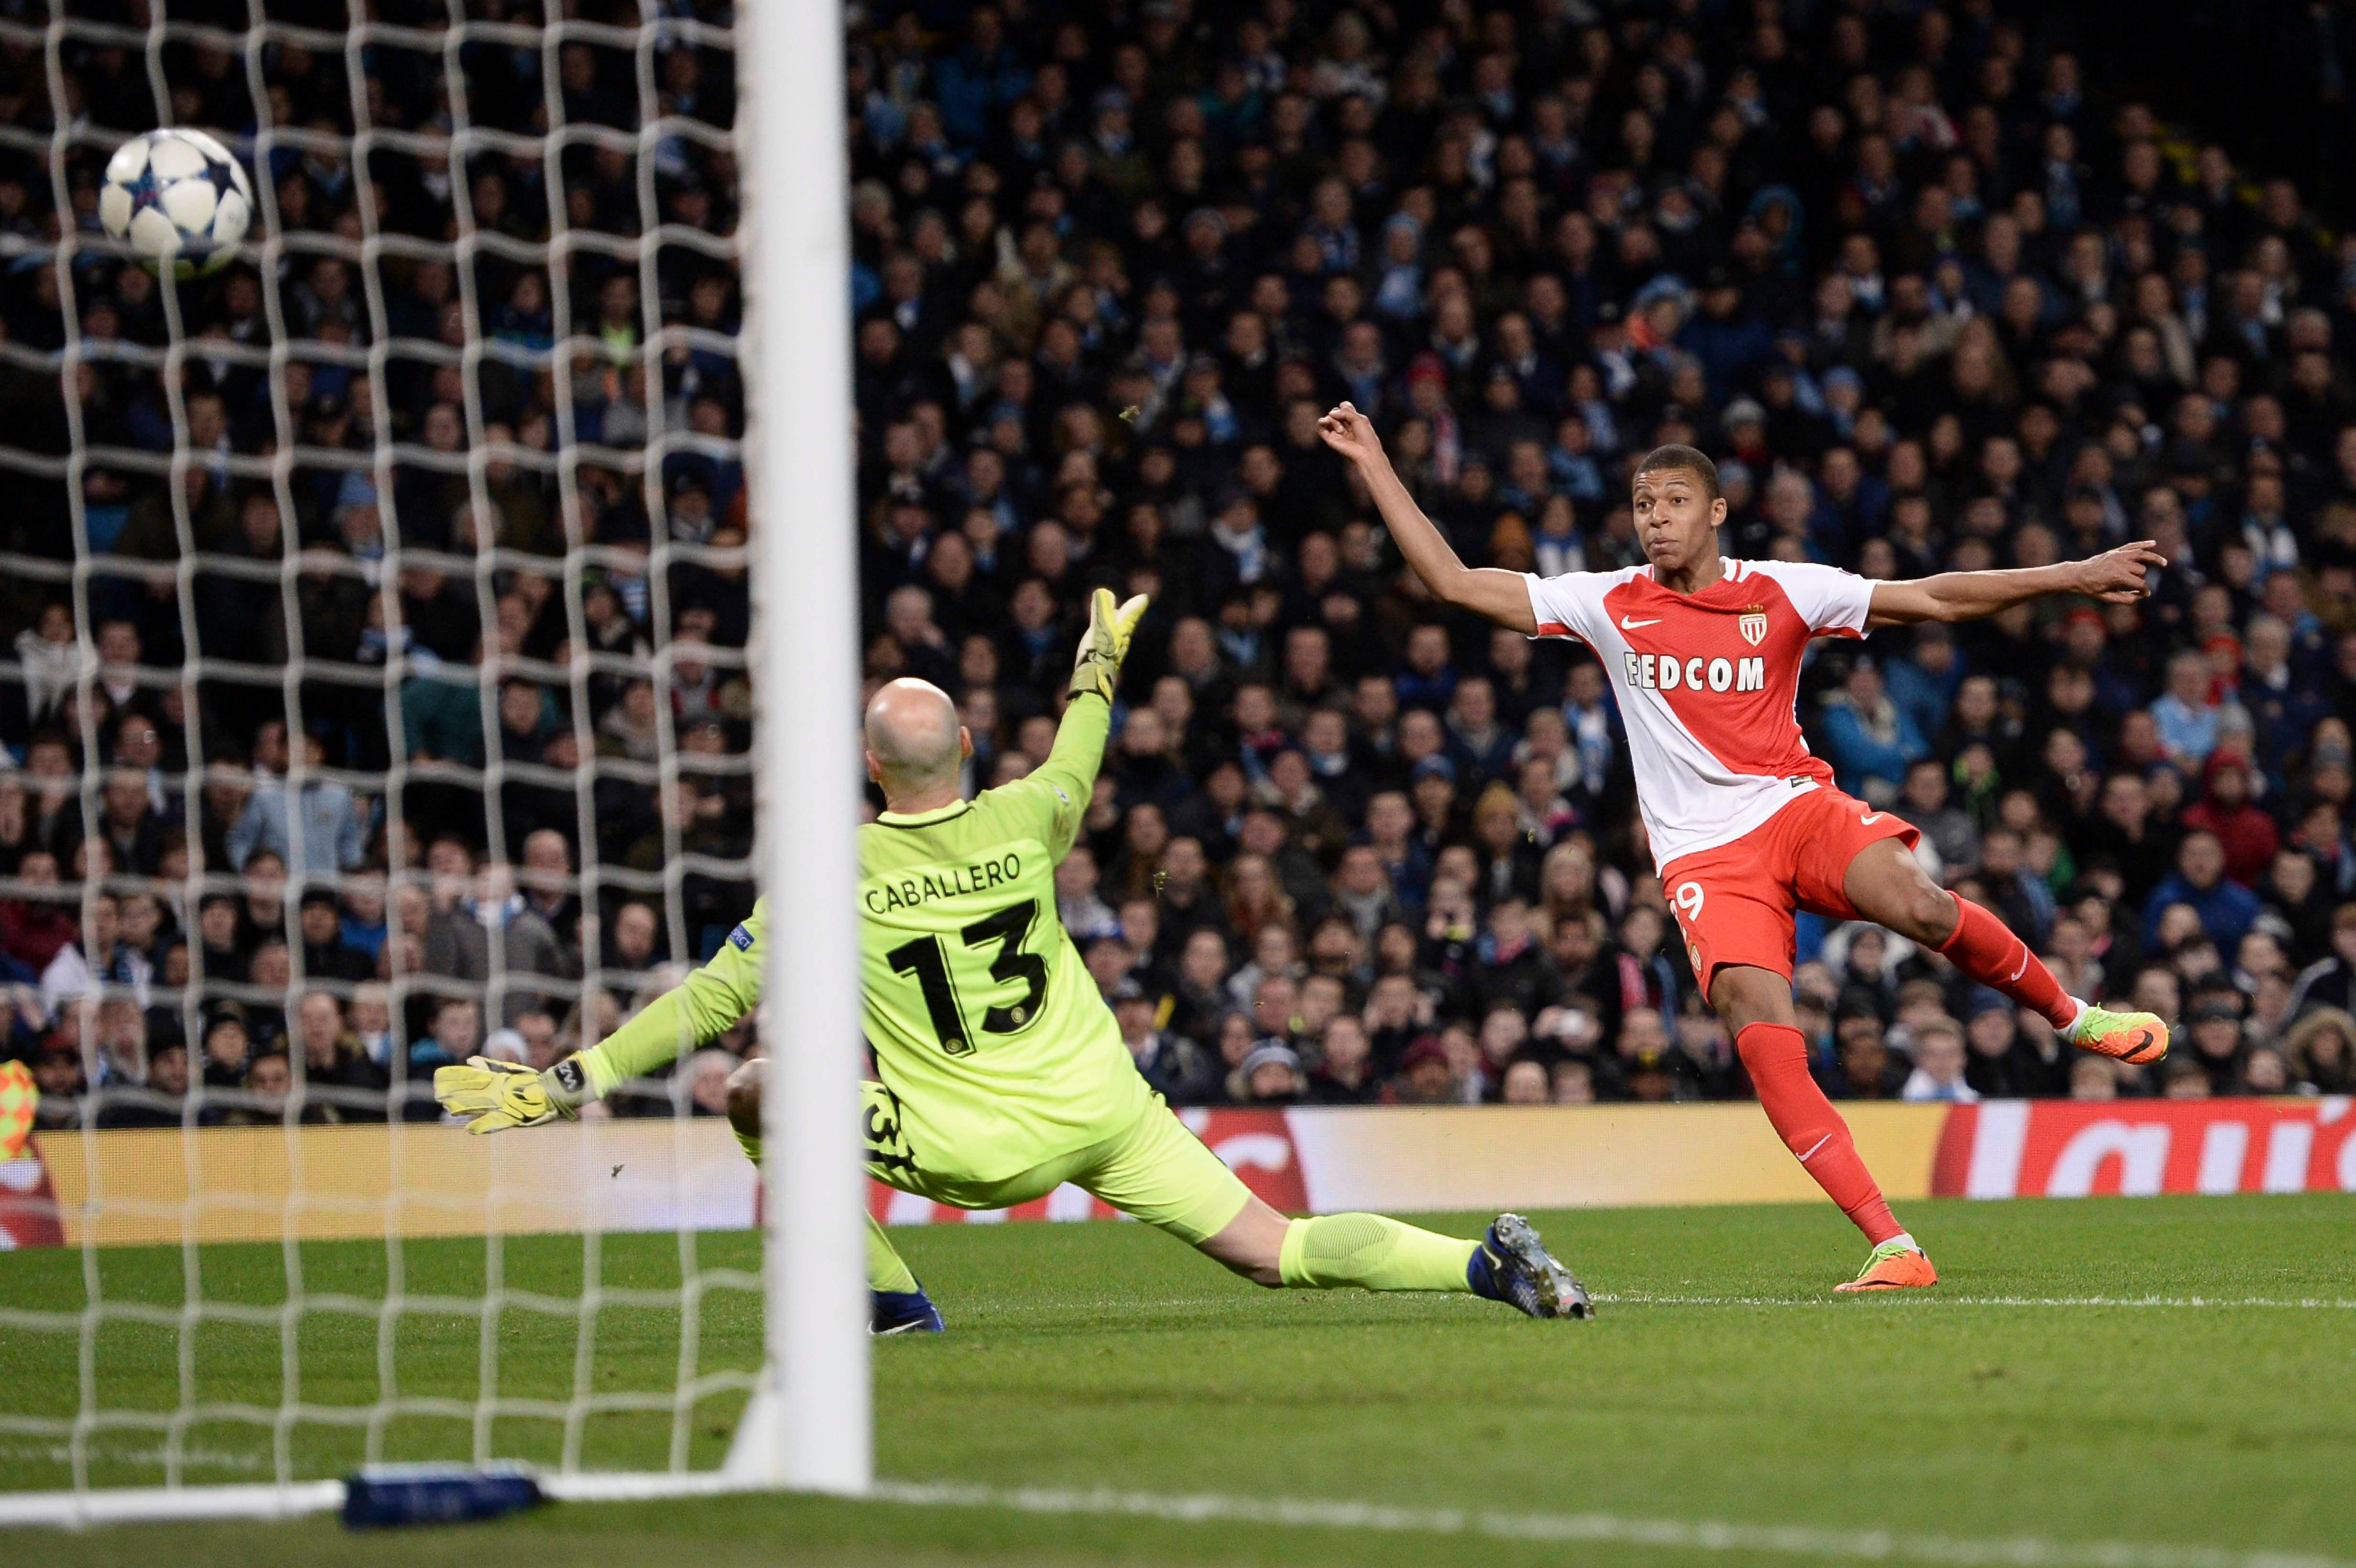 Kylian Mbappe starred in the Champions League as he helped his side reach the semi-finals stages